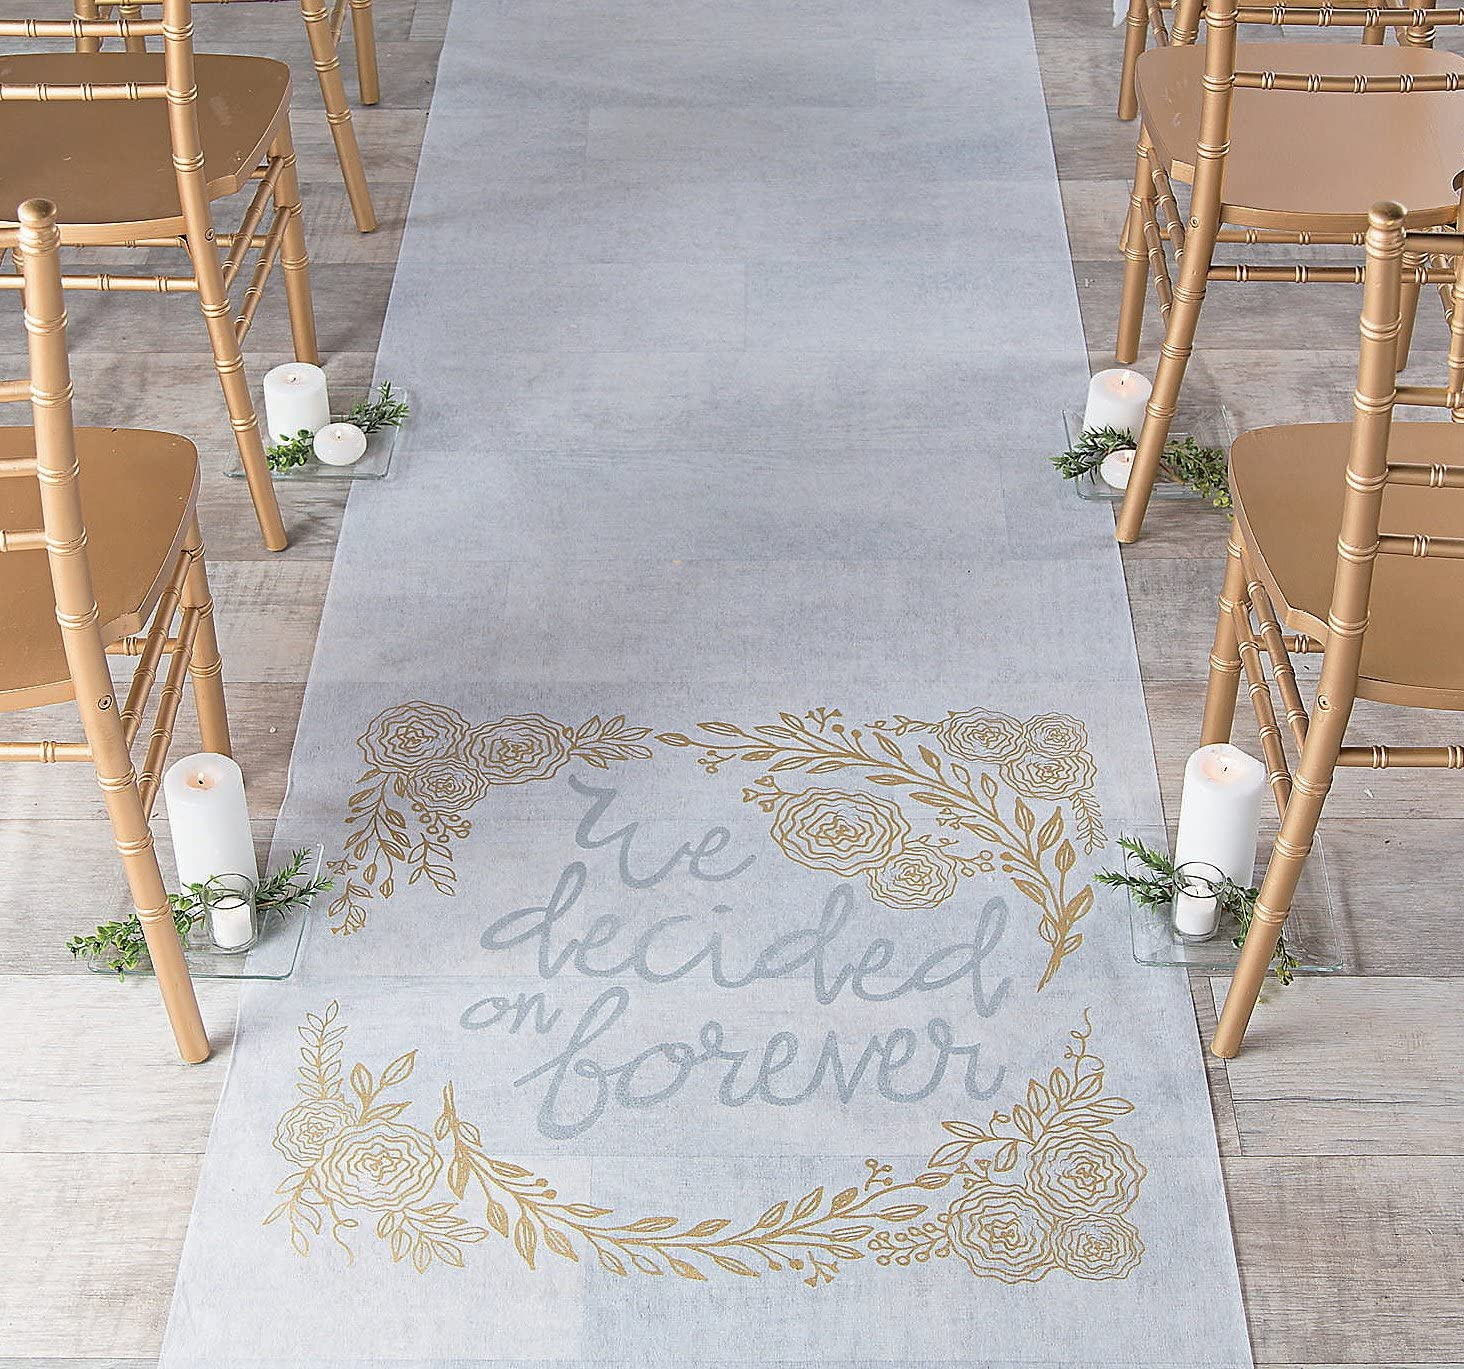 We Decided on Forever Aisle Runner Fun Express SG/_B079J5DYXZ/_US